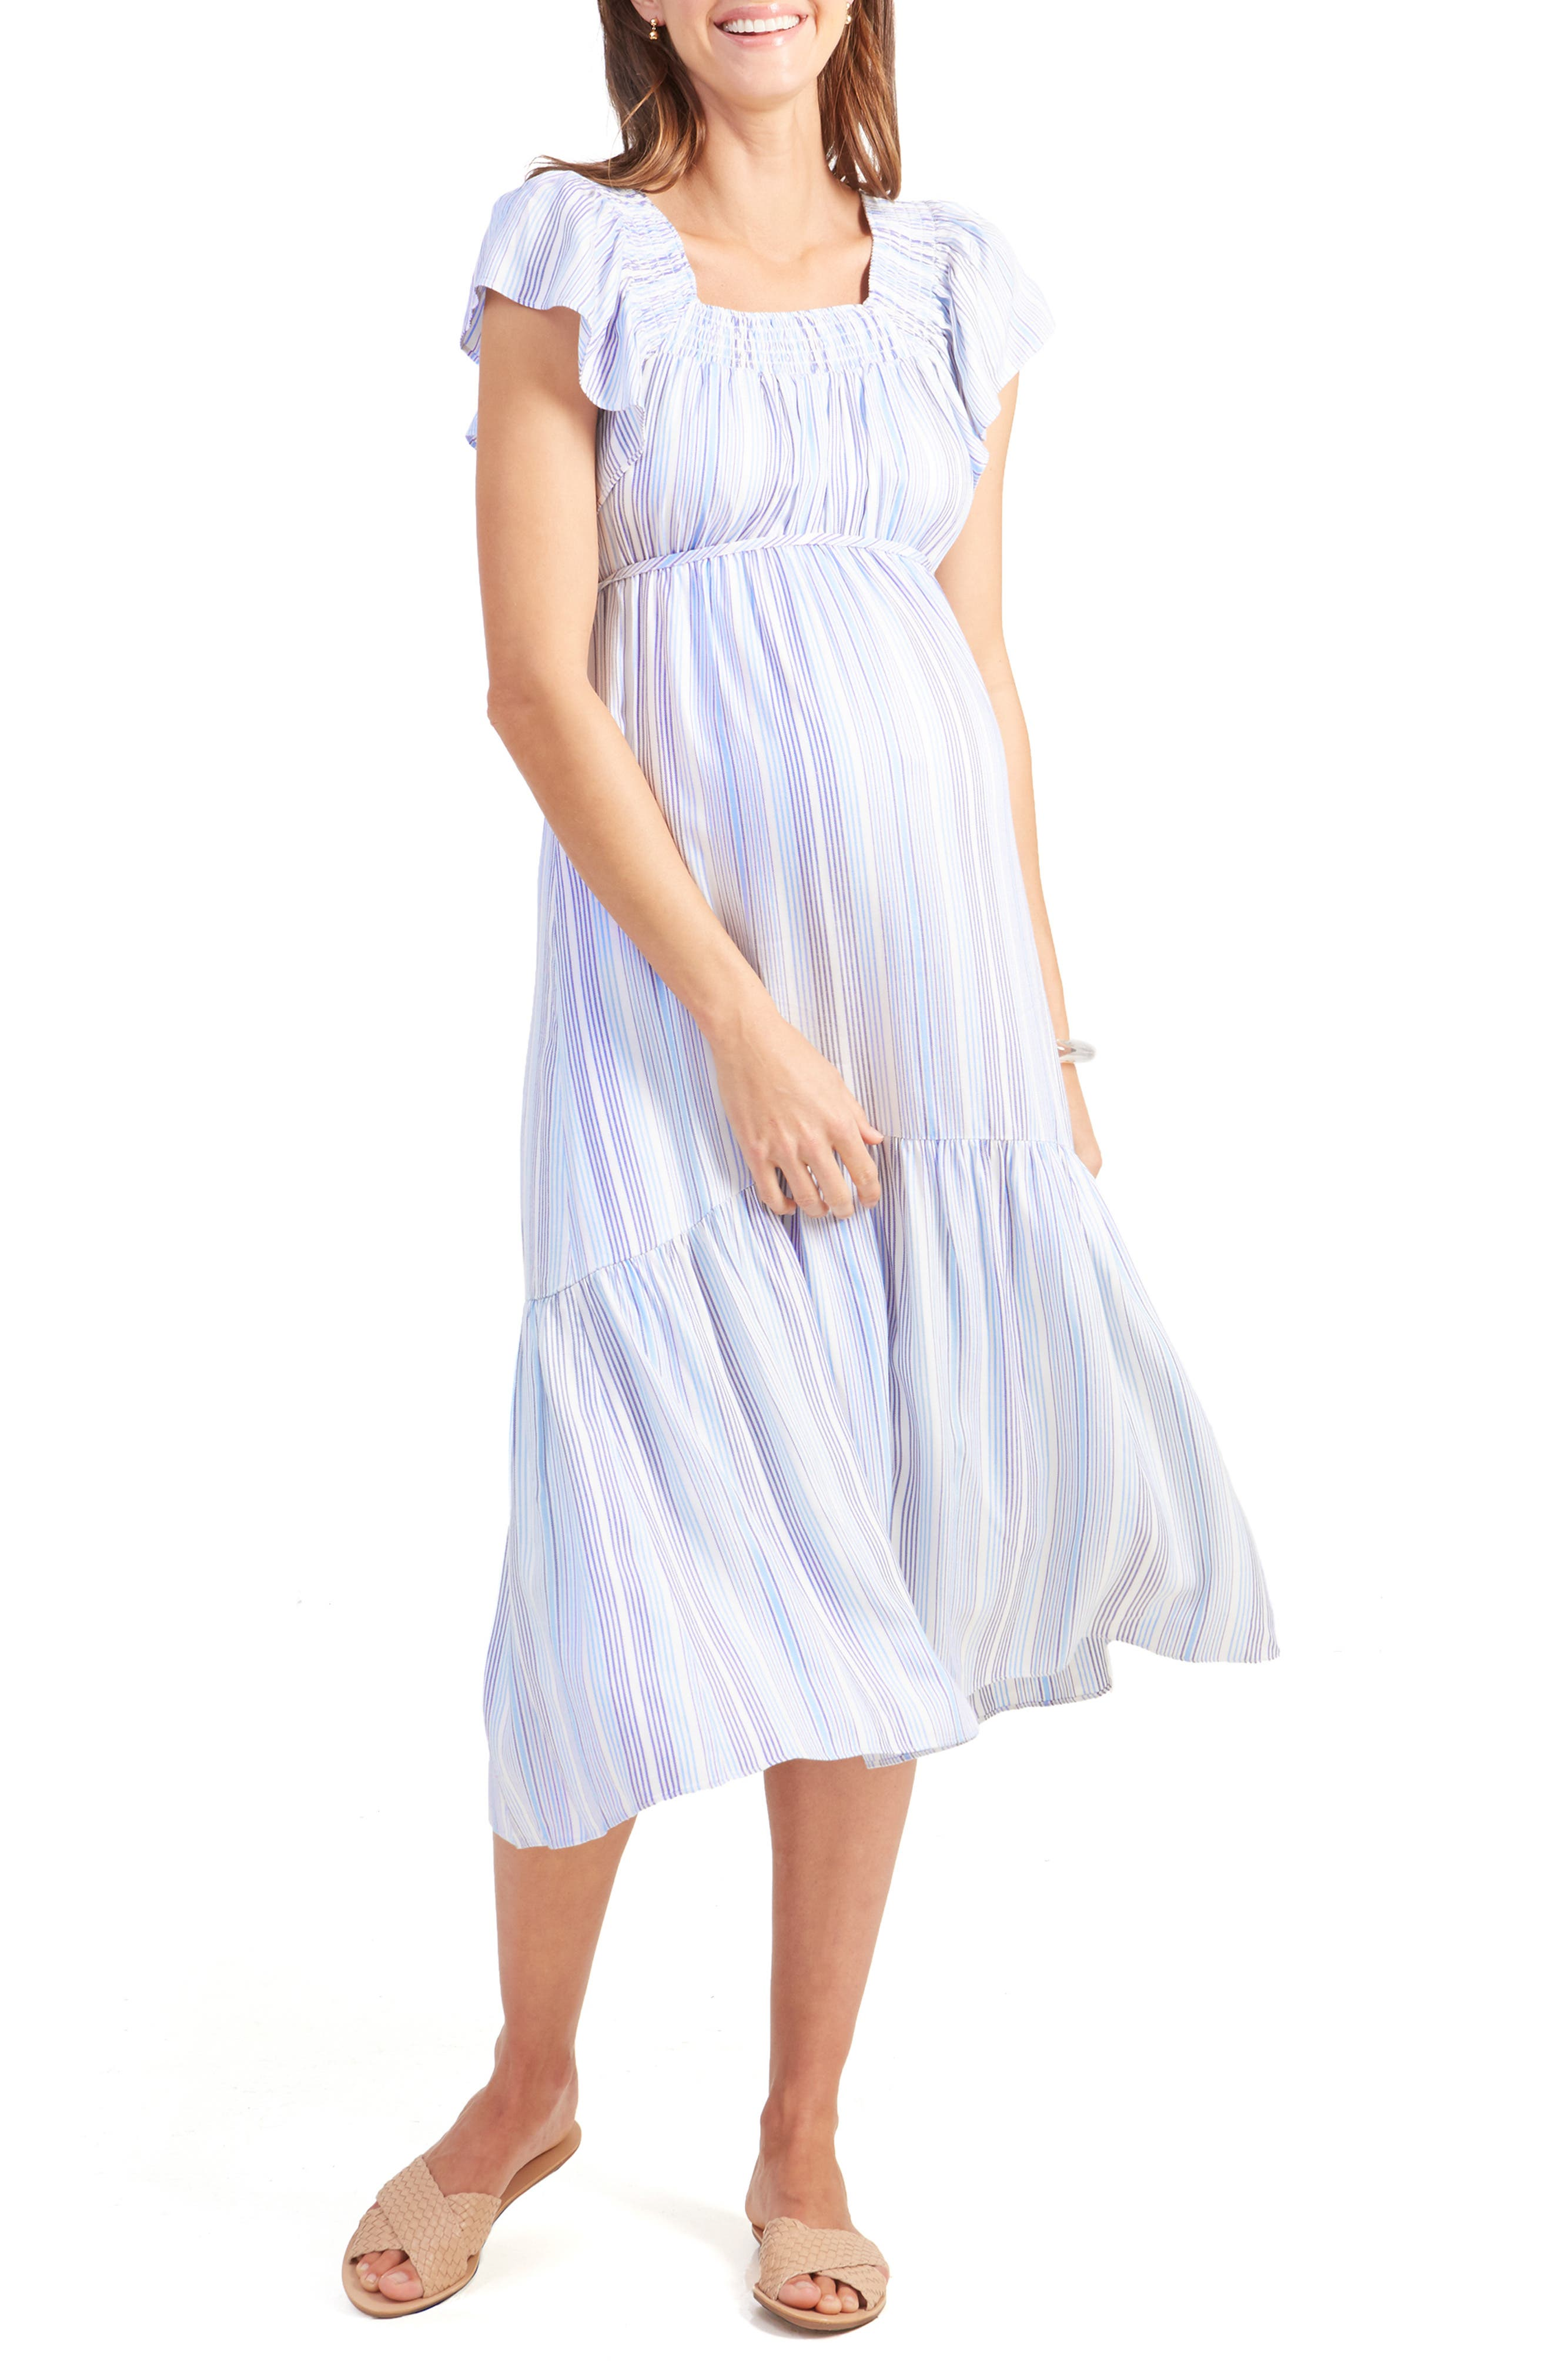 petite maternity clothes